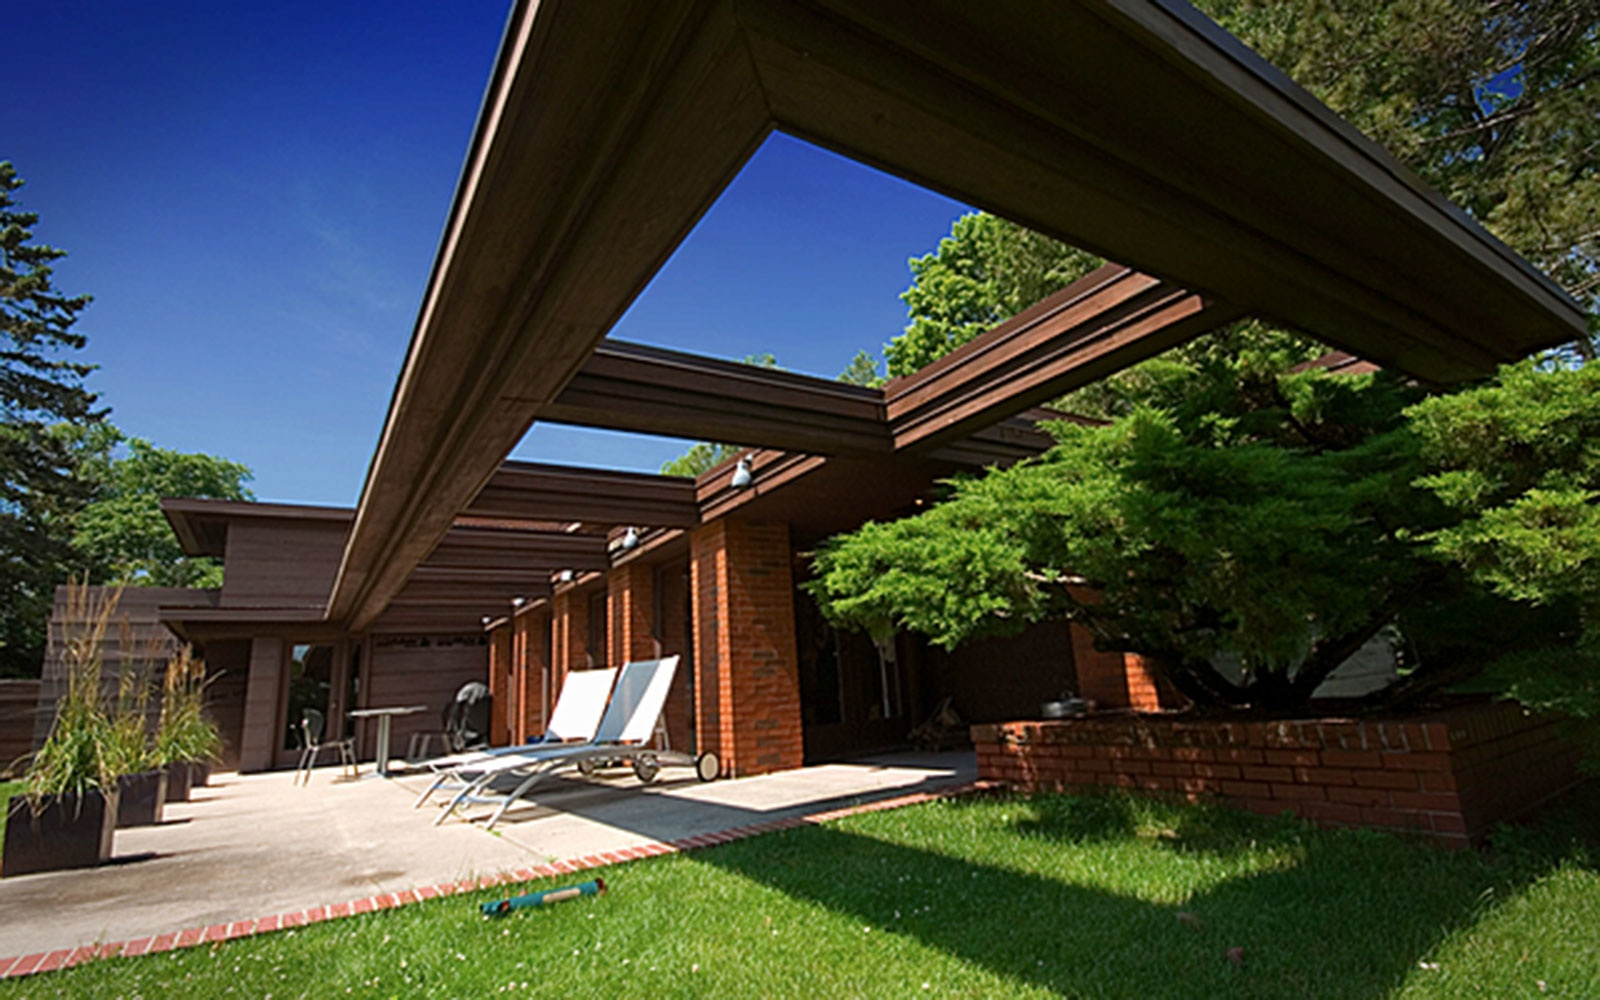 Frank Lloyd Wright's Schwartz House